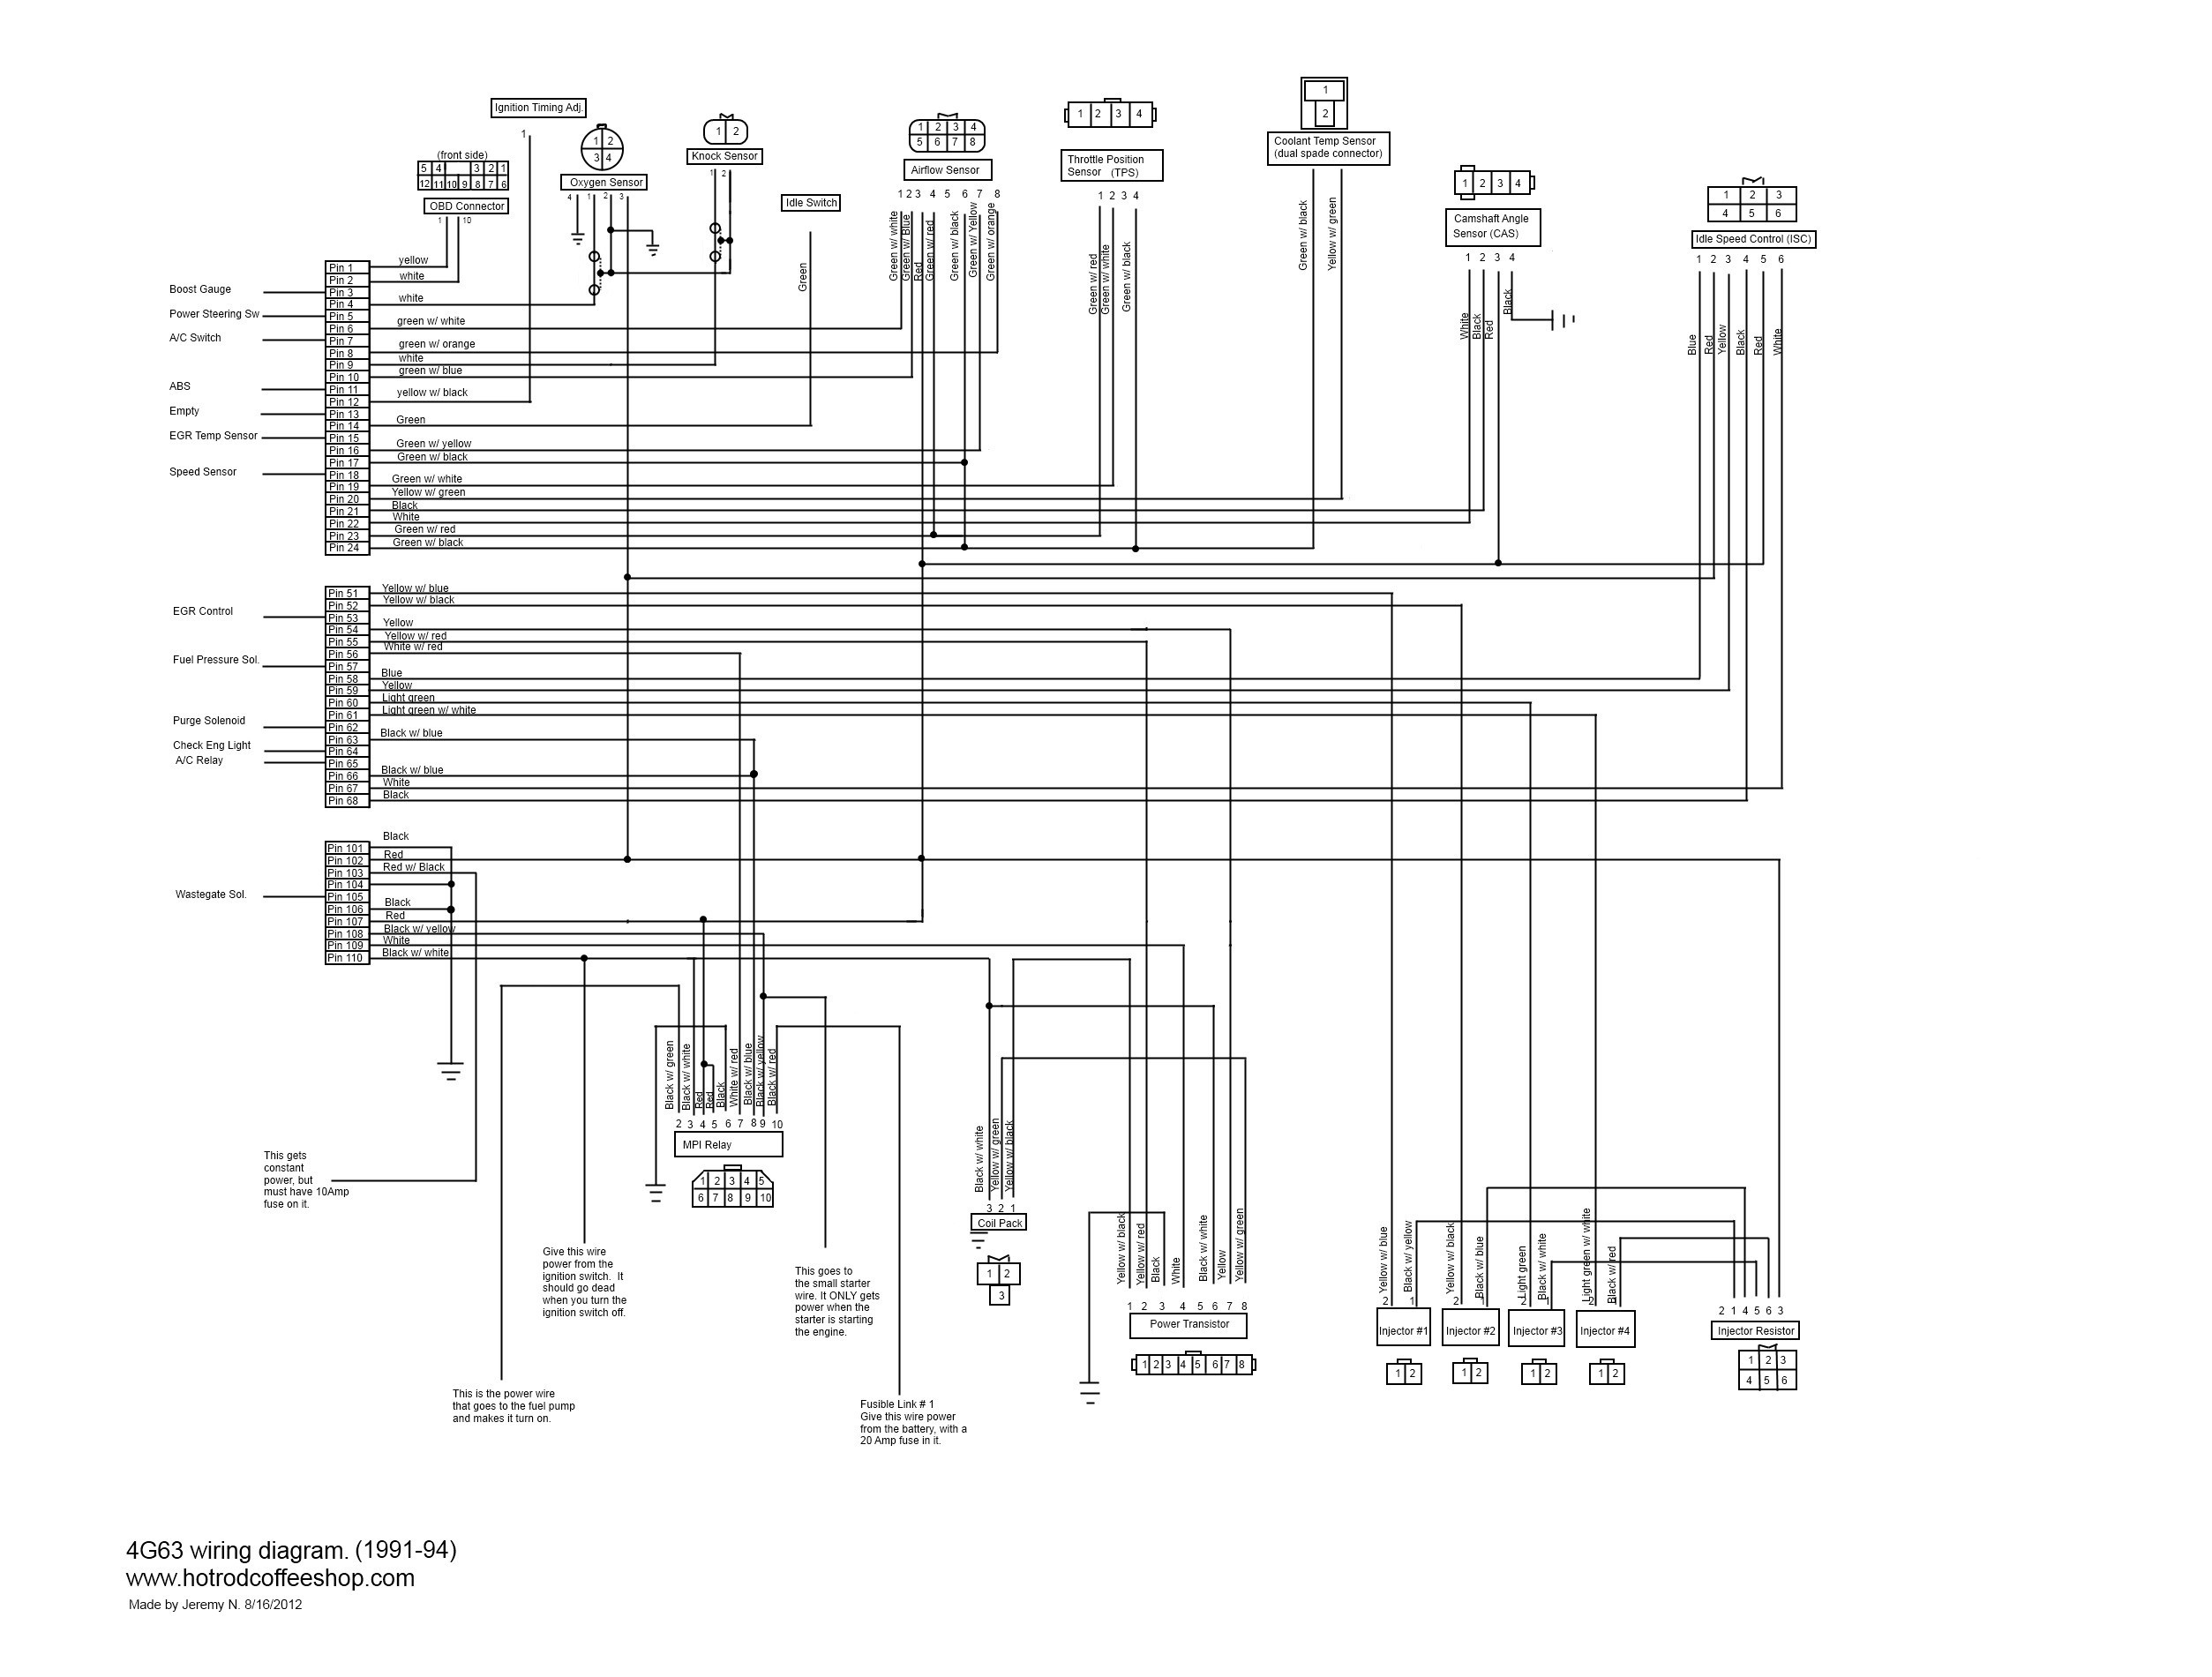 chevy 3 4l engine diagram free download ccfd14ni bibliofem nl \u2022